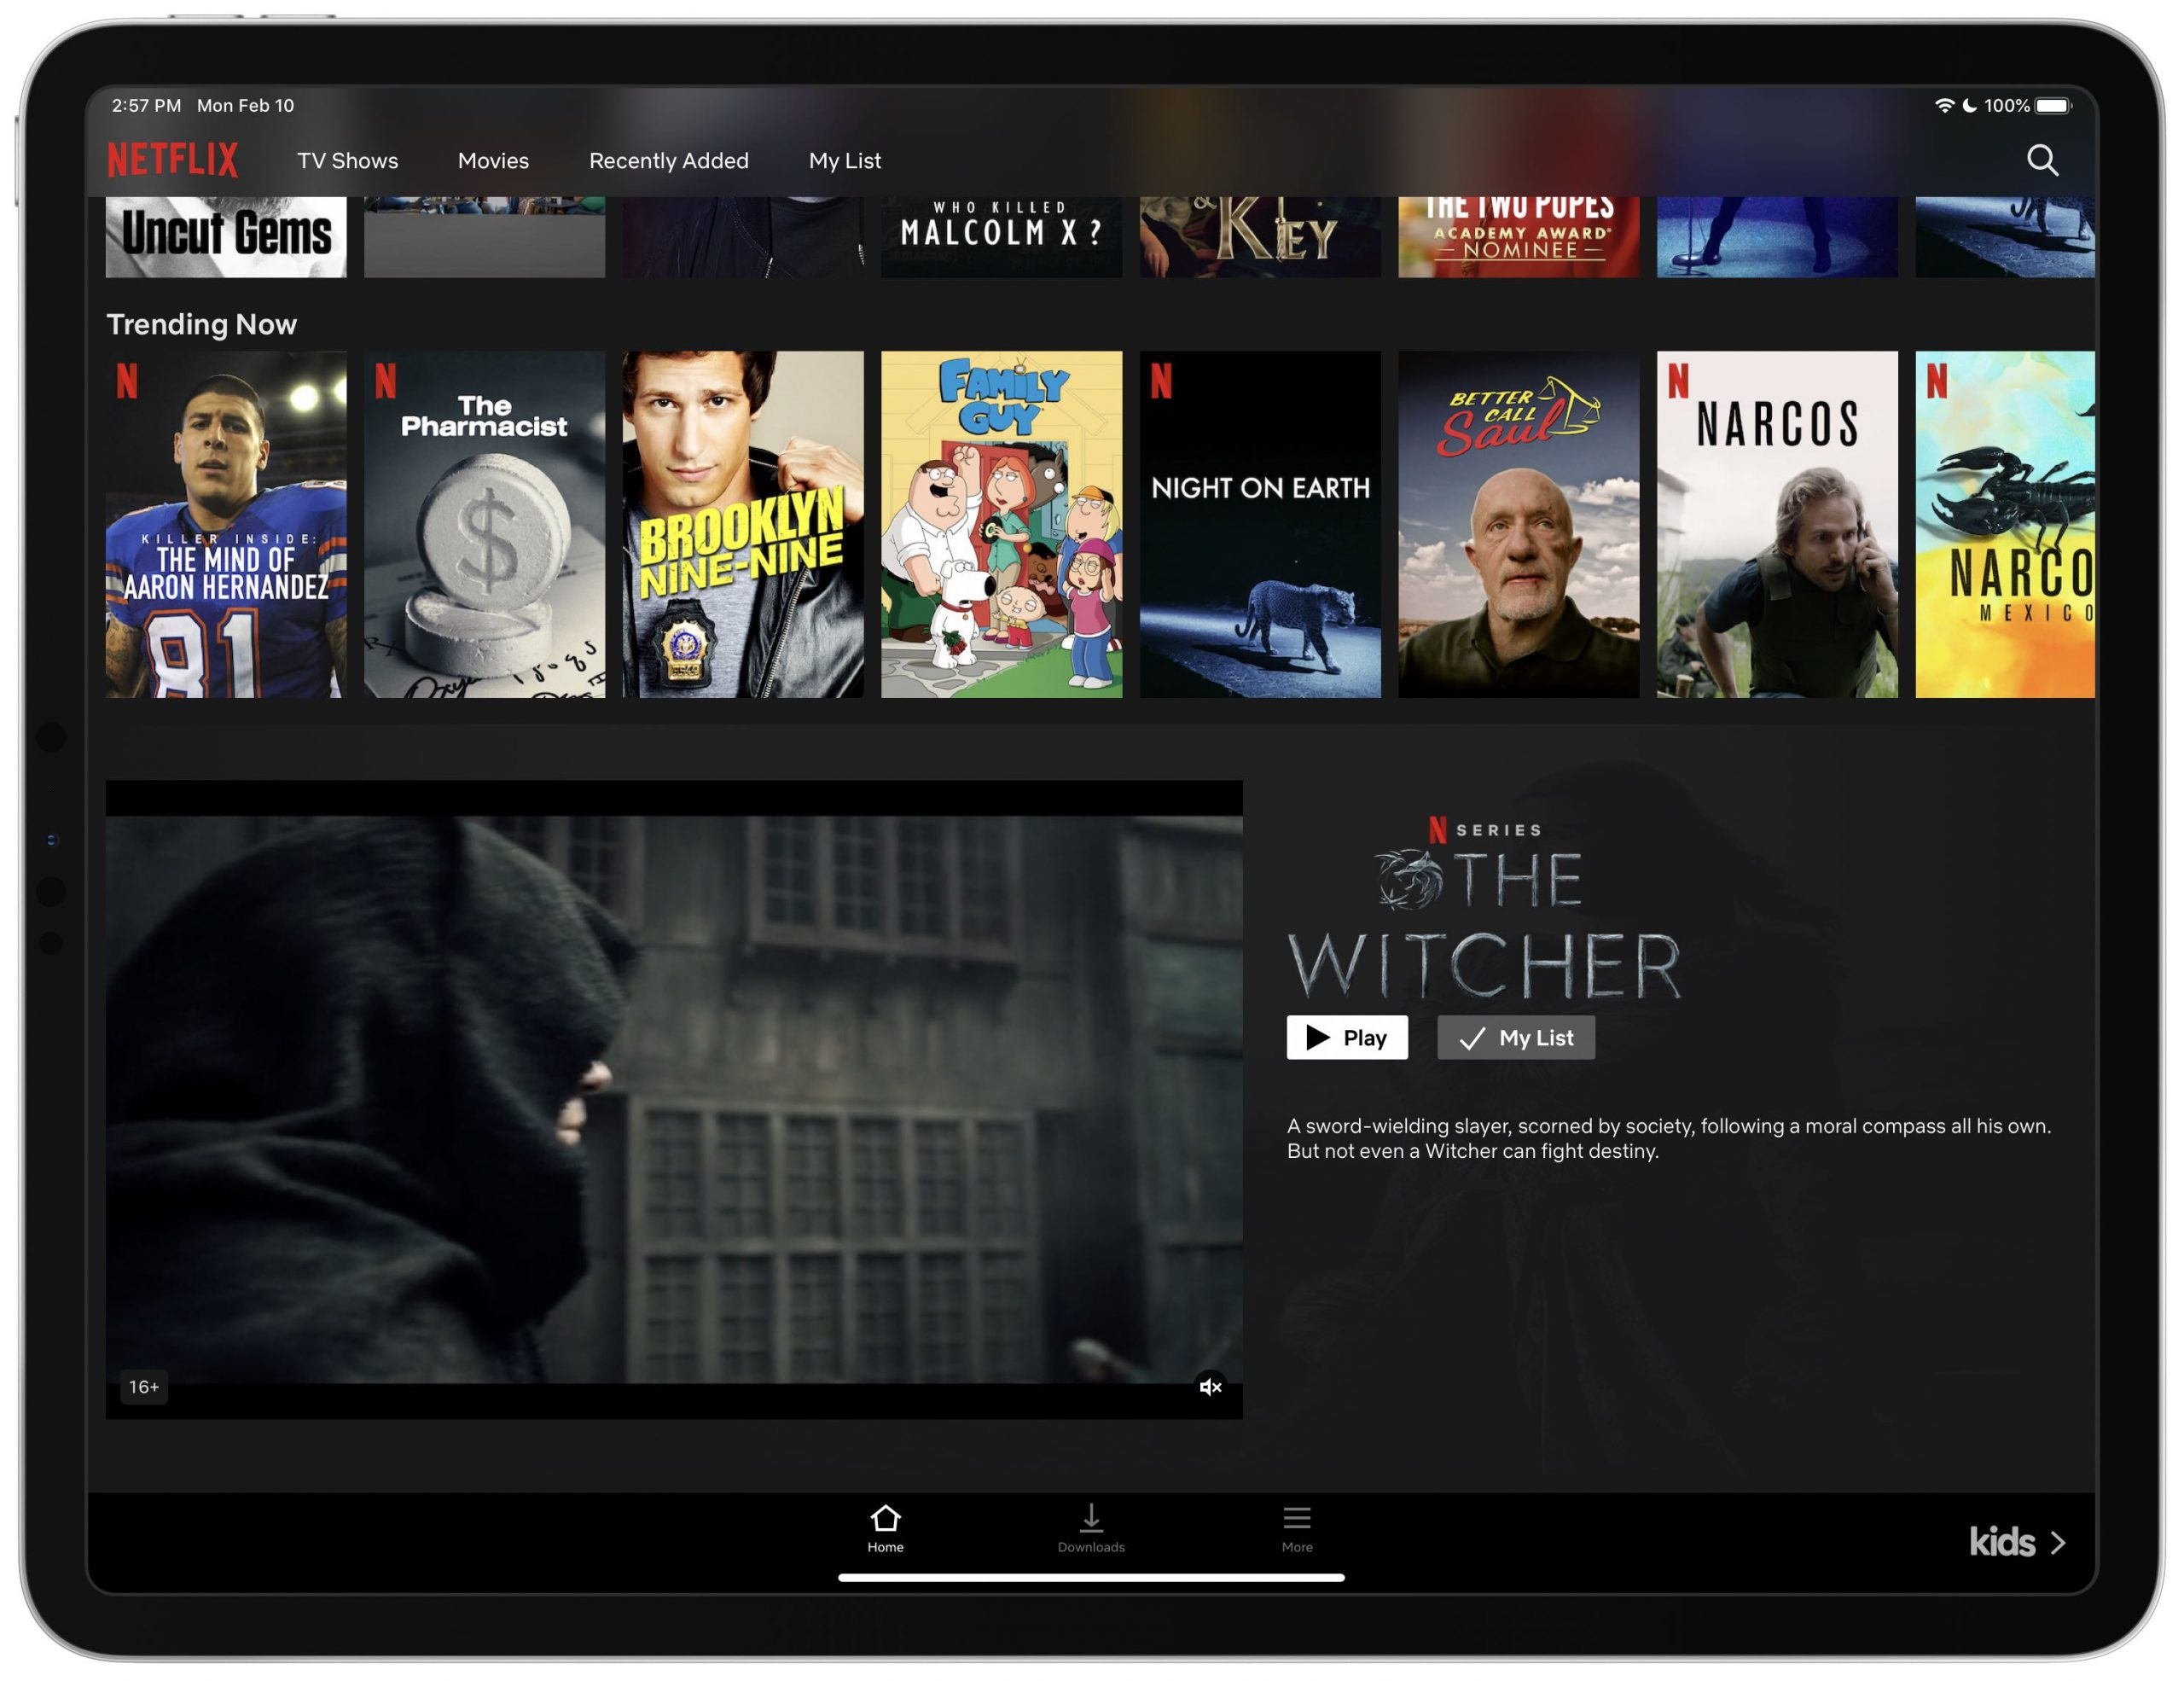 Netflix autoplay previews settings